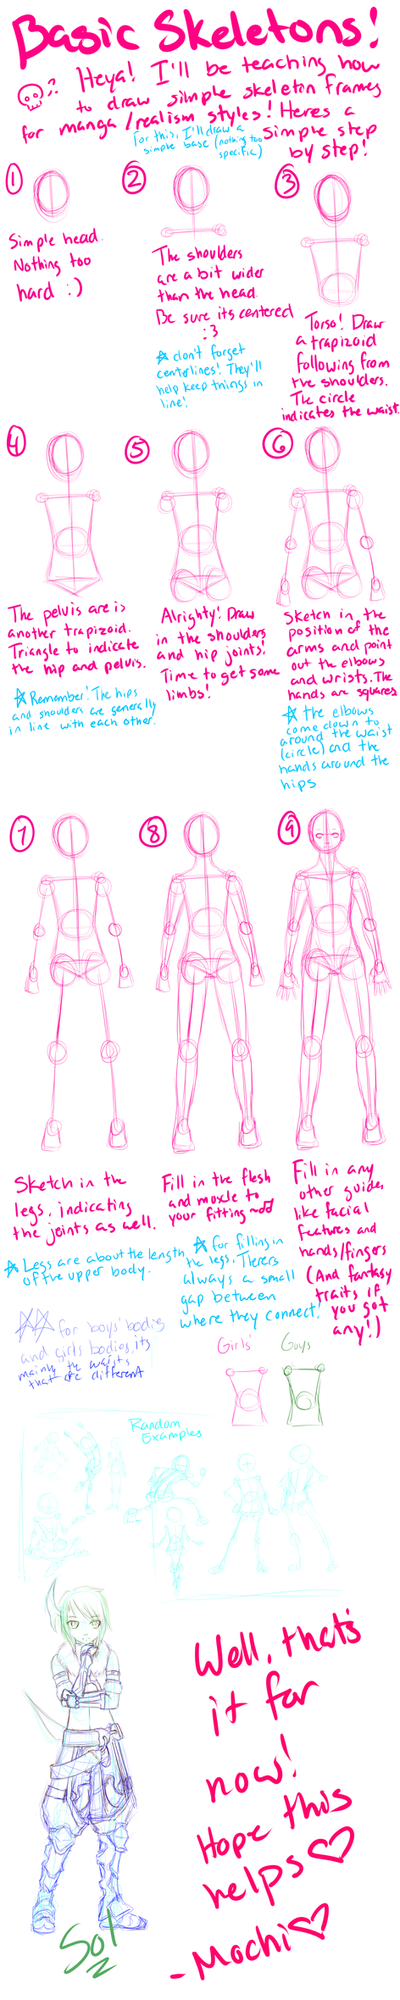 How To Skeleton Frames By Kidicarus242 On Deviantart